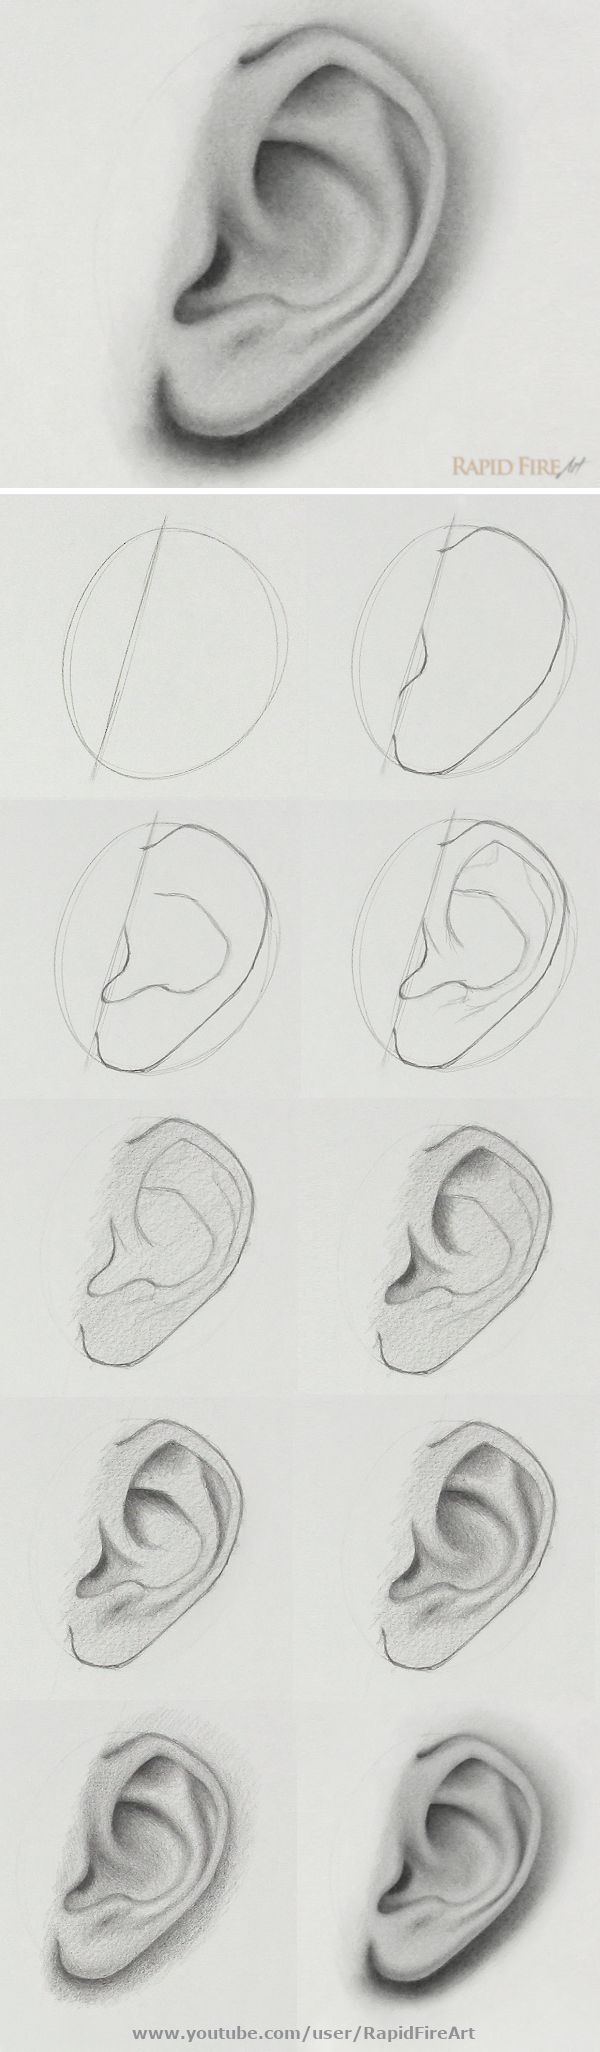 How to Draw + Shade Ears | Side View